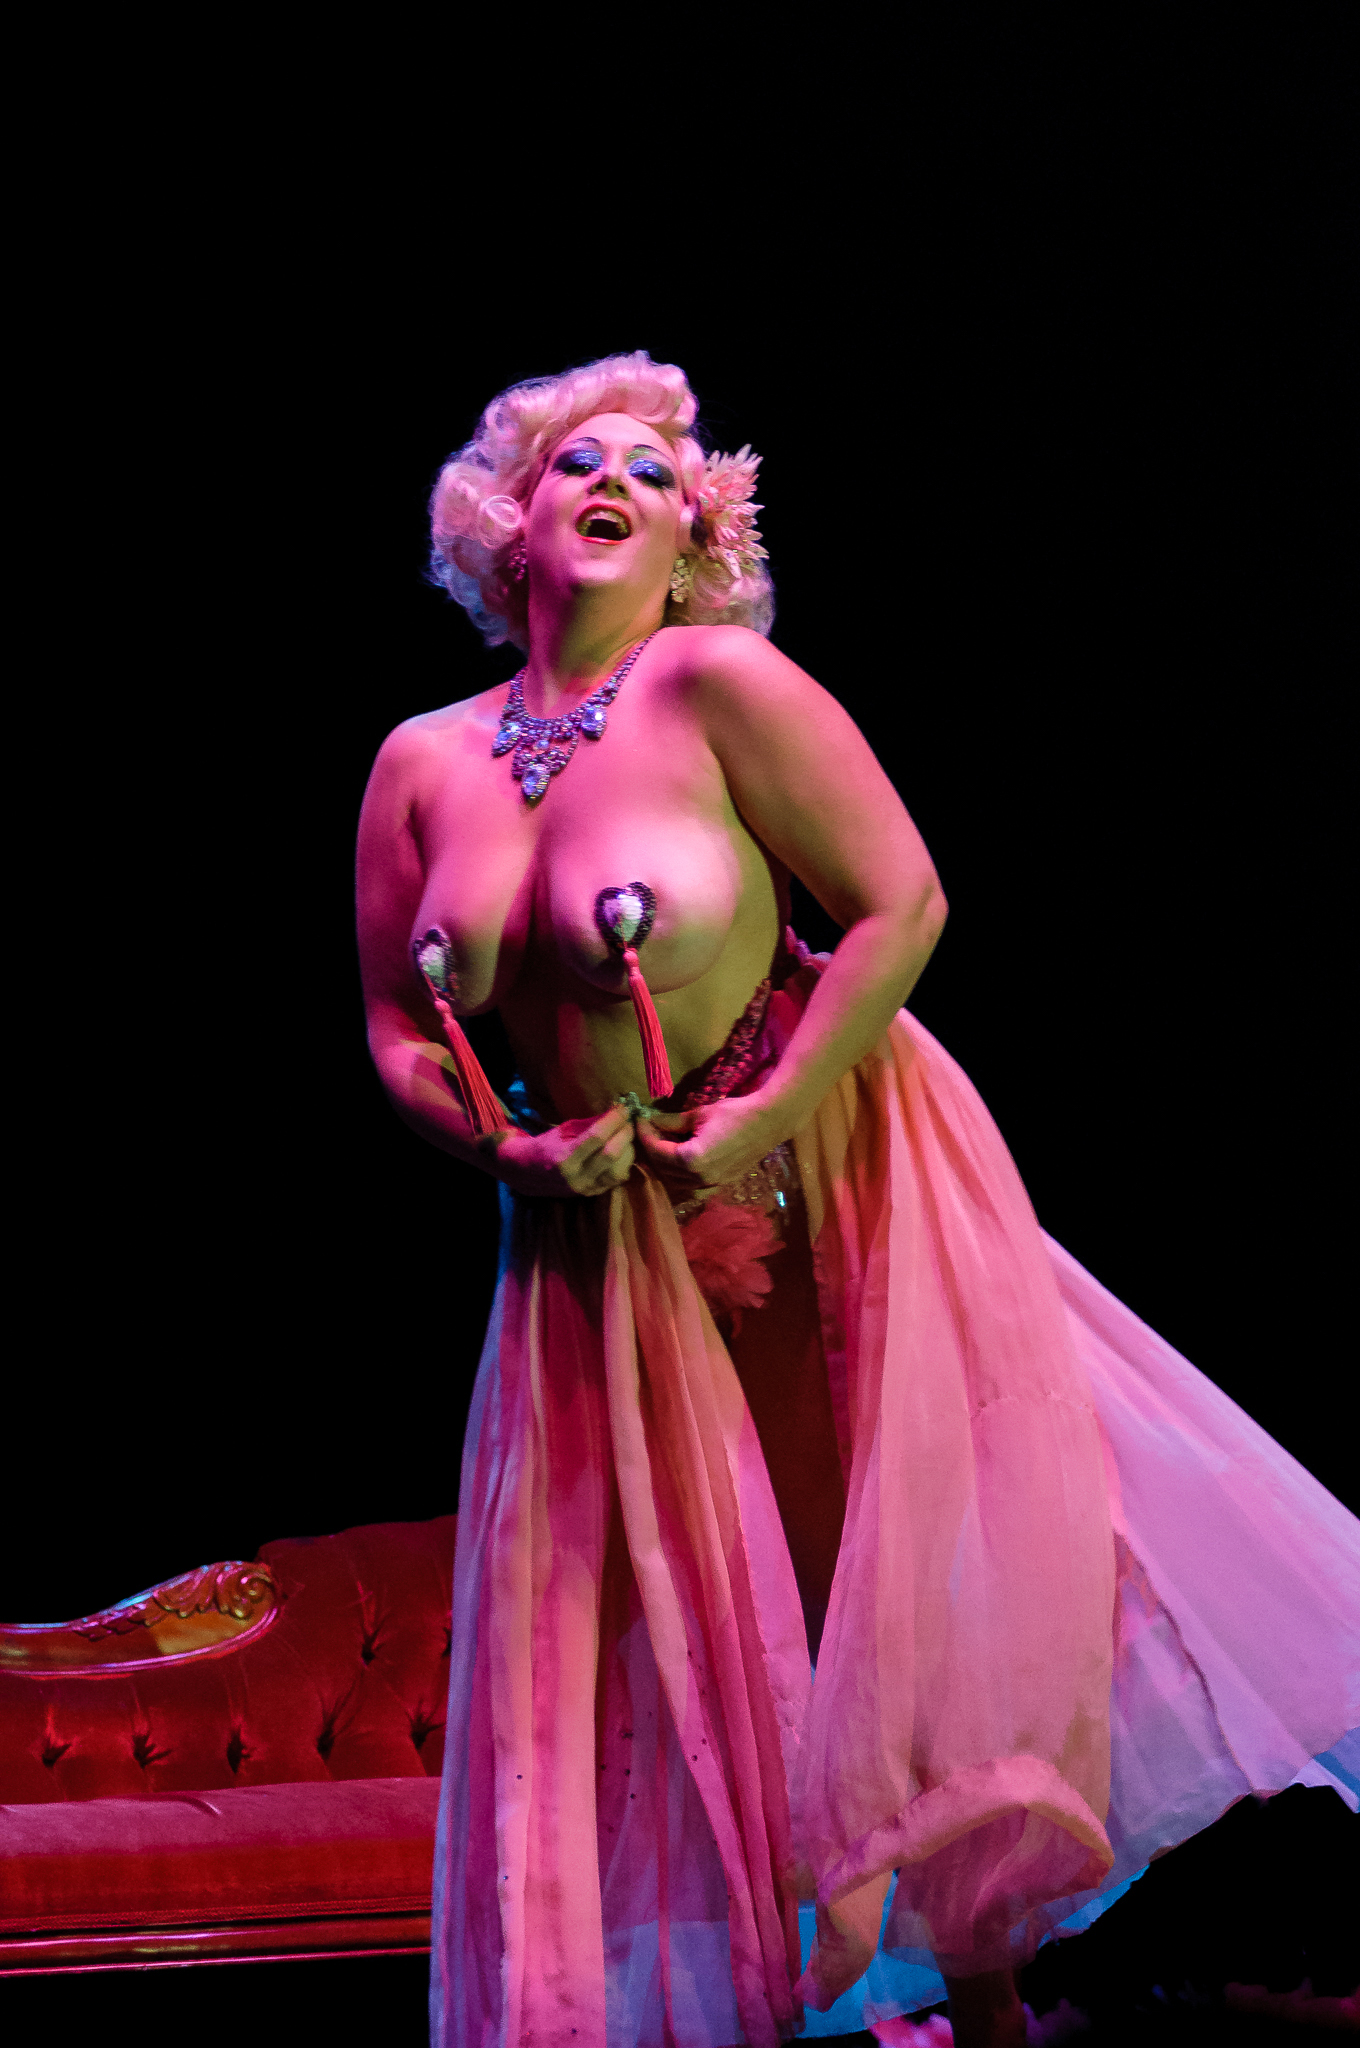 Five time Burlesque TOP 50 No. 1 Dirty Martini, by Mark Kaplan (NakedLens.org)